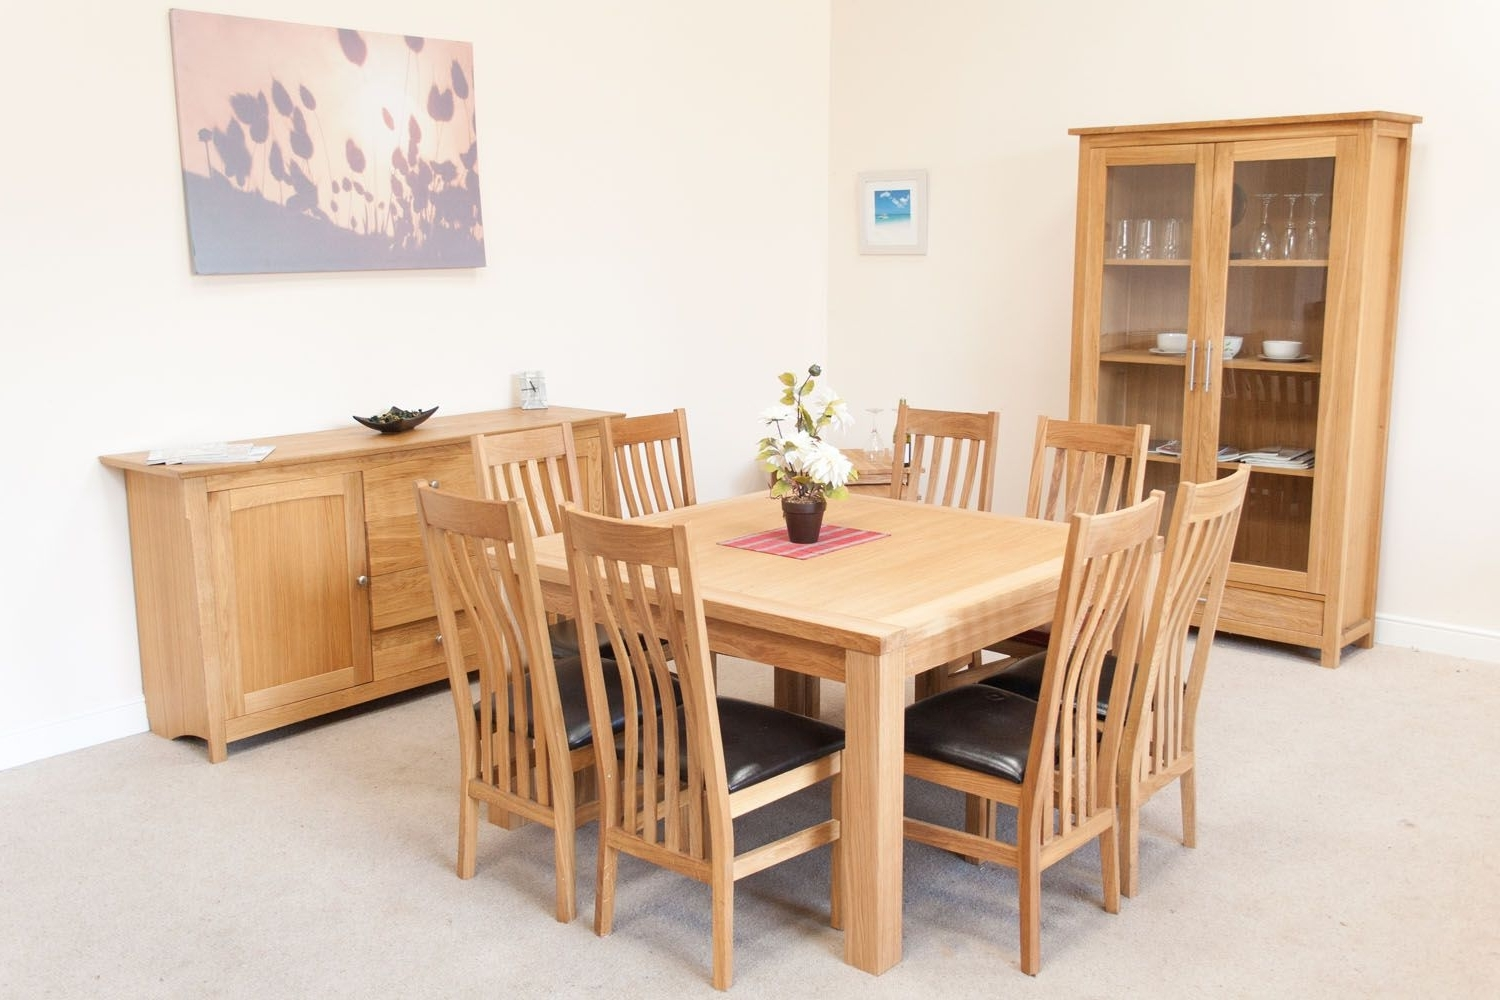 Most Popular Square Oak Dining Tables Inside Minsk Large Square Oak Dining Table 8 Seater (Gallery 1 of 25)